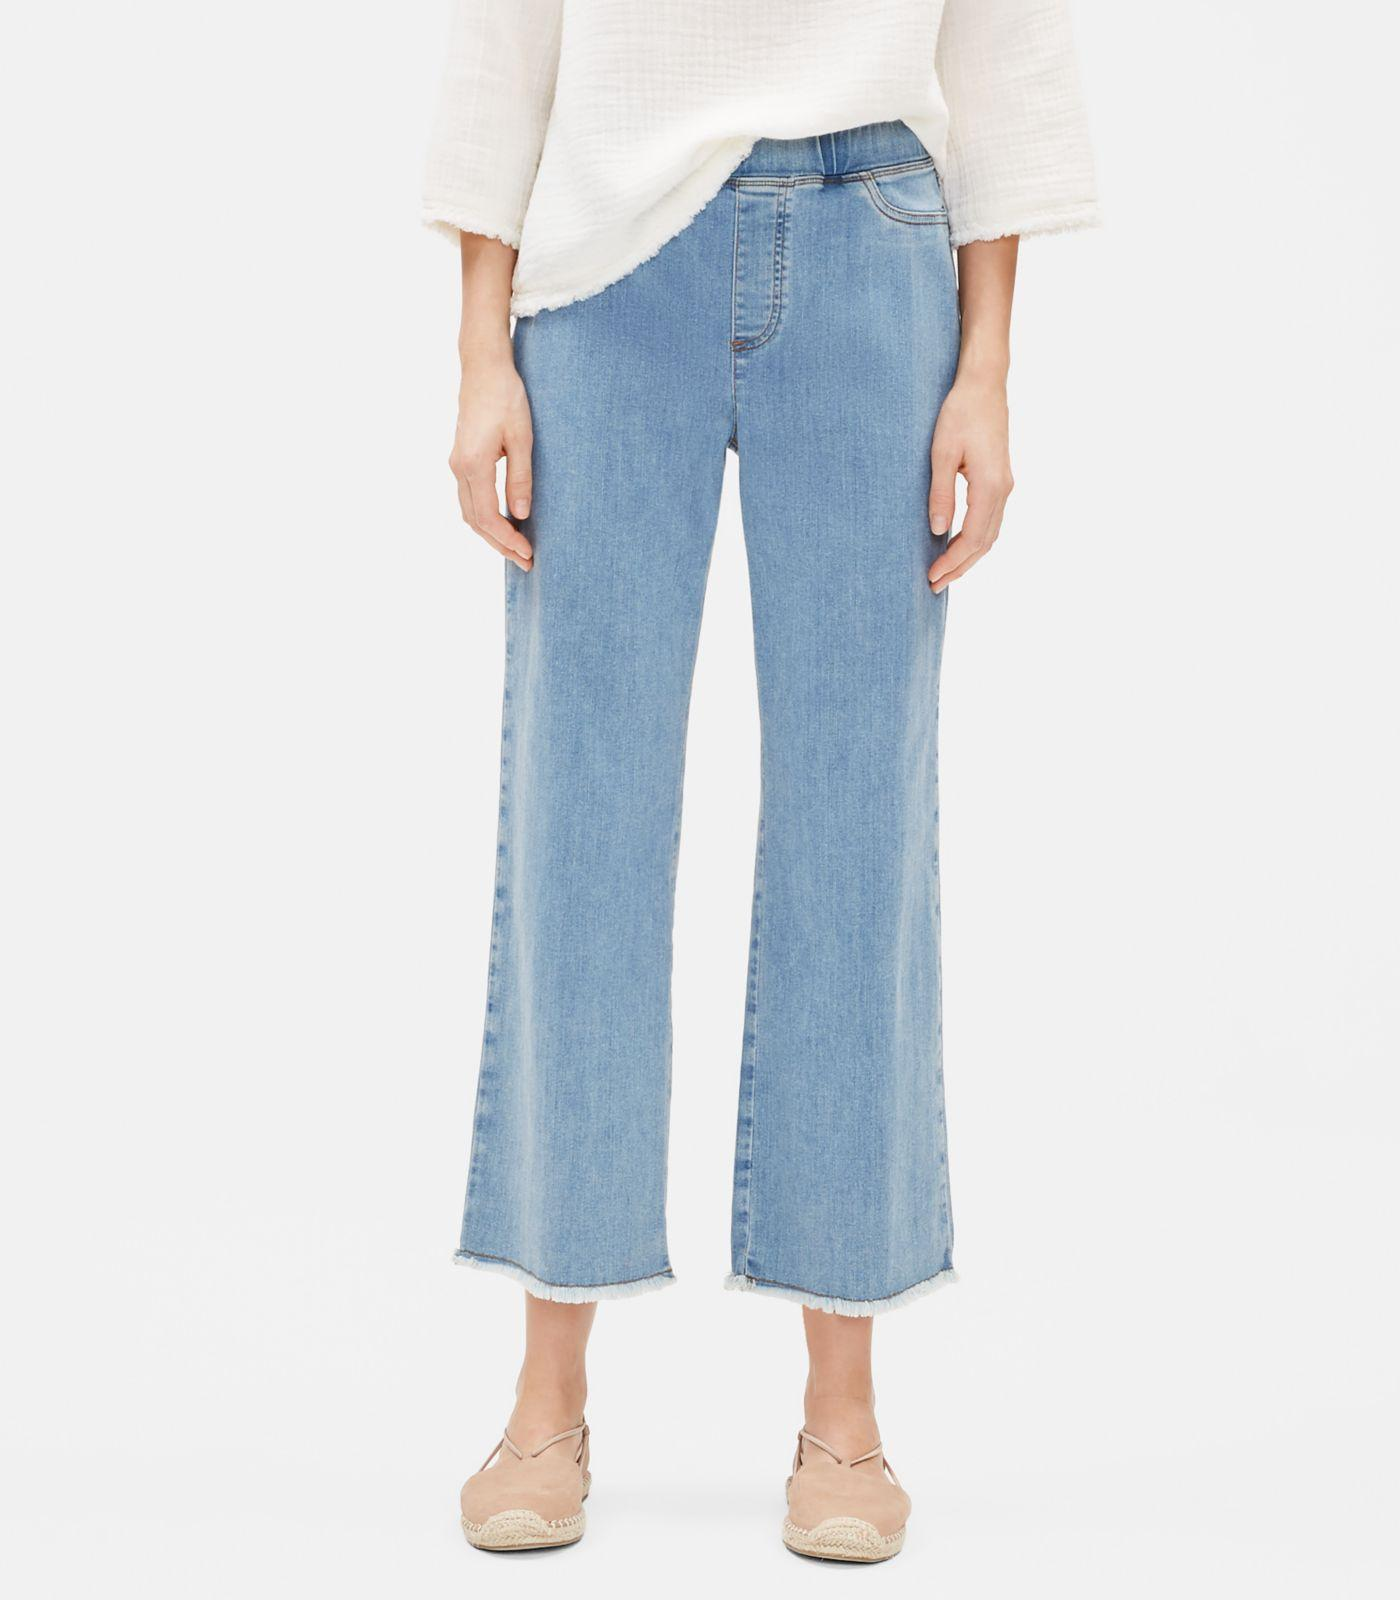 9598e5df19058 Eileen Fisher - Blue Organic Cotton Stretch Raw-edge Jean - Lyst. View  fullscreen